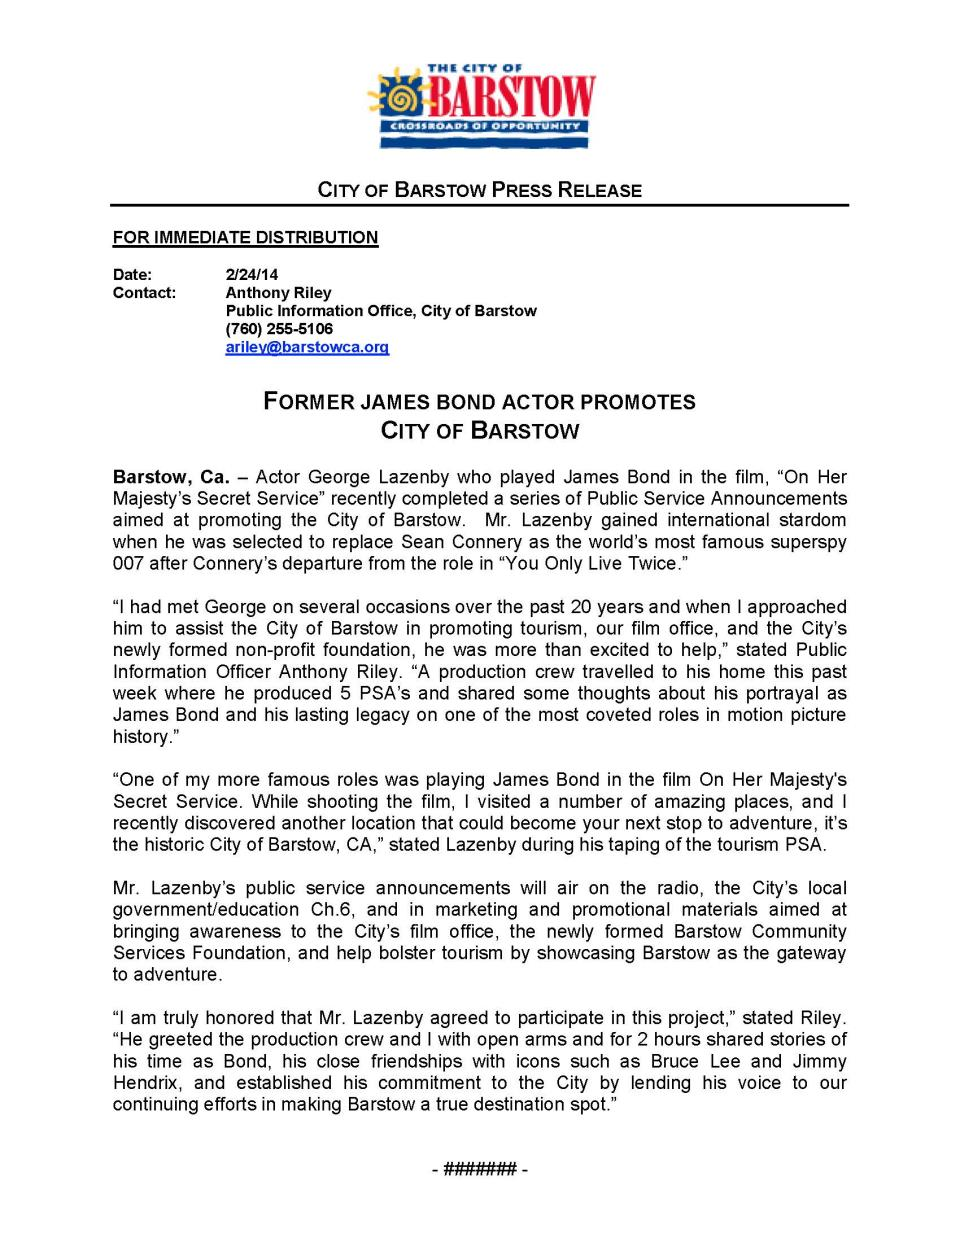 Press Release - James Bond Promotes City of Barstow